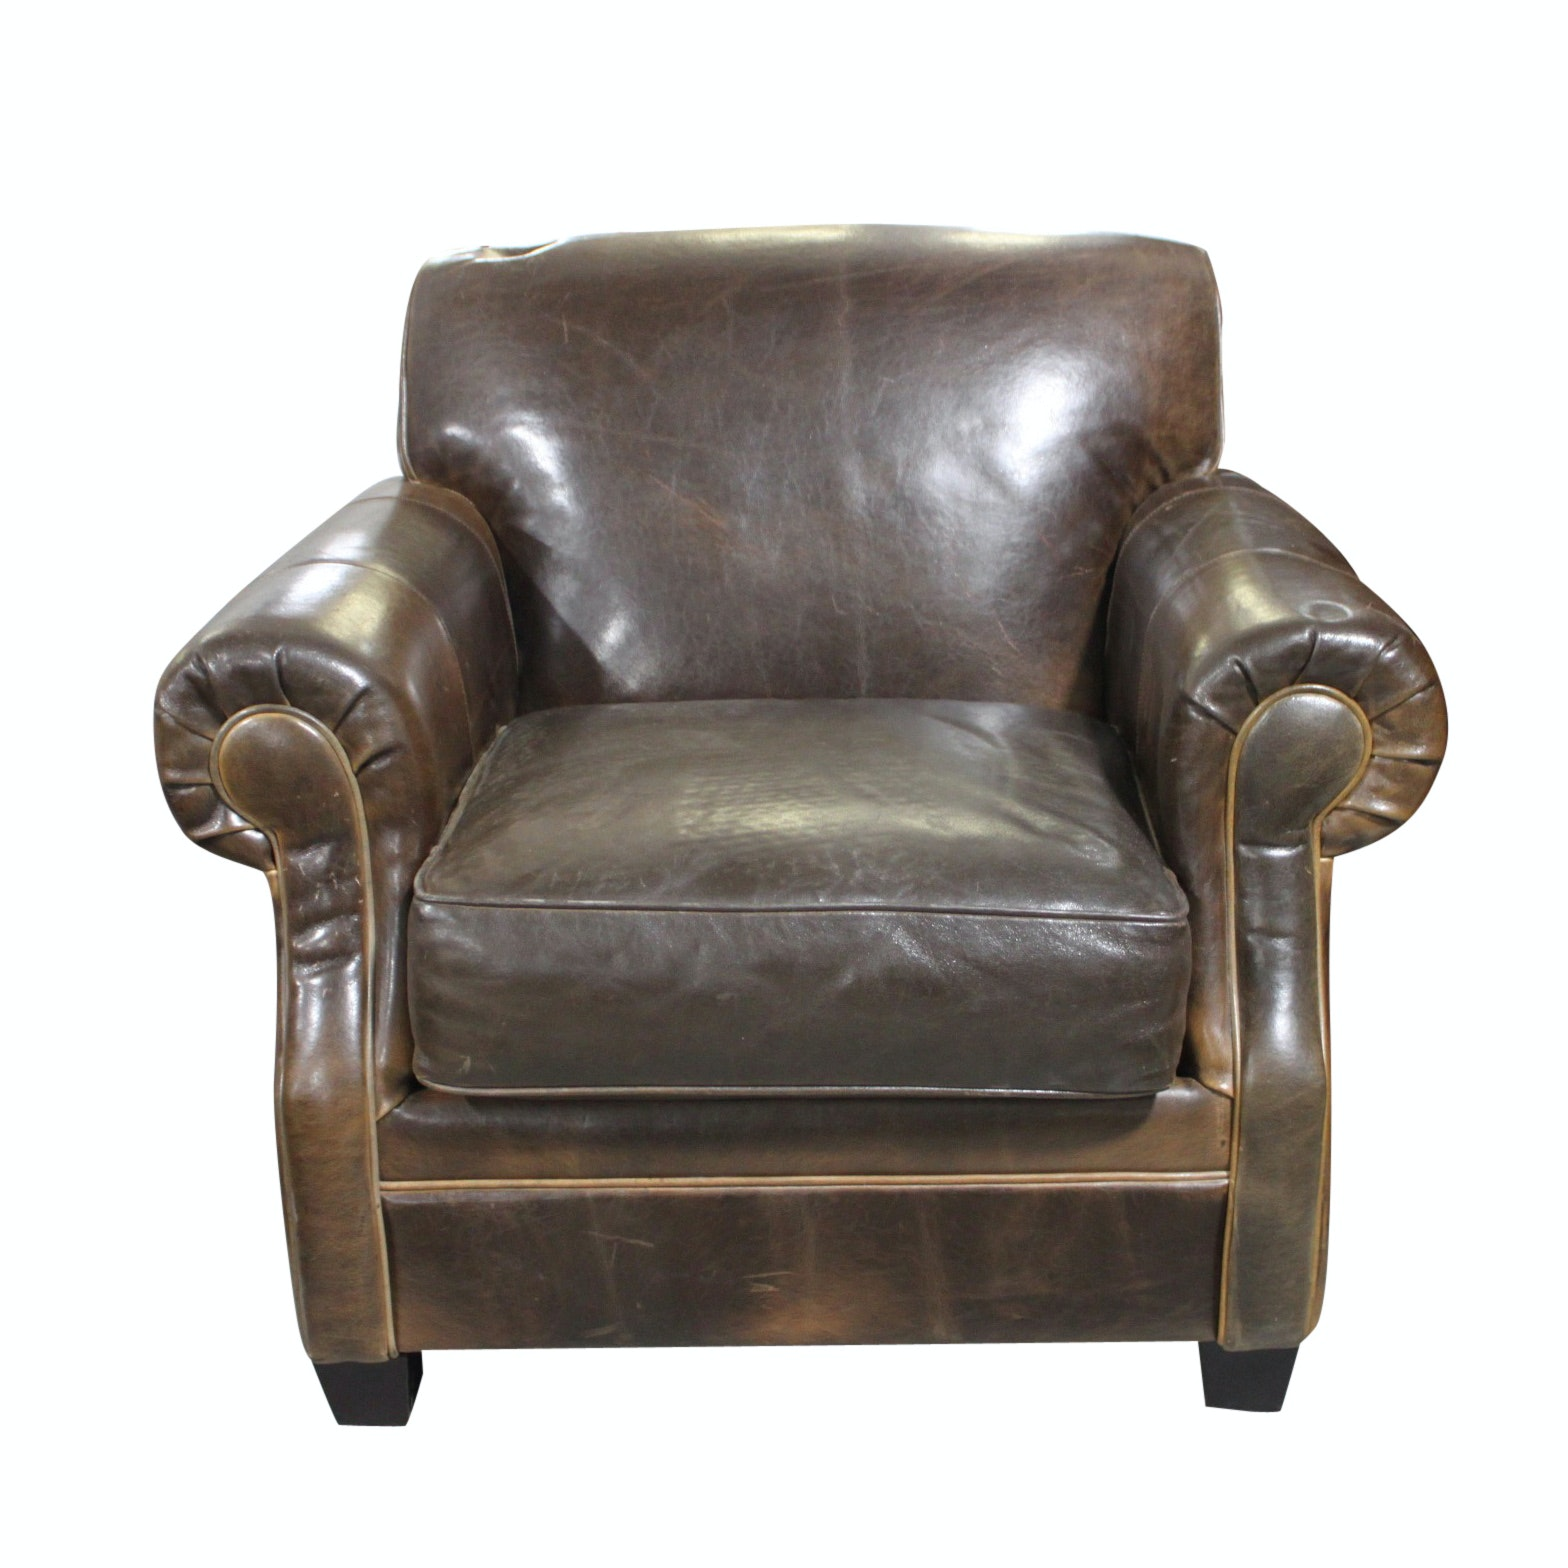 Leather Armchair by Arhaus Furniture